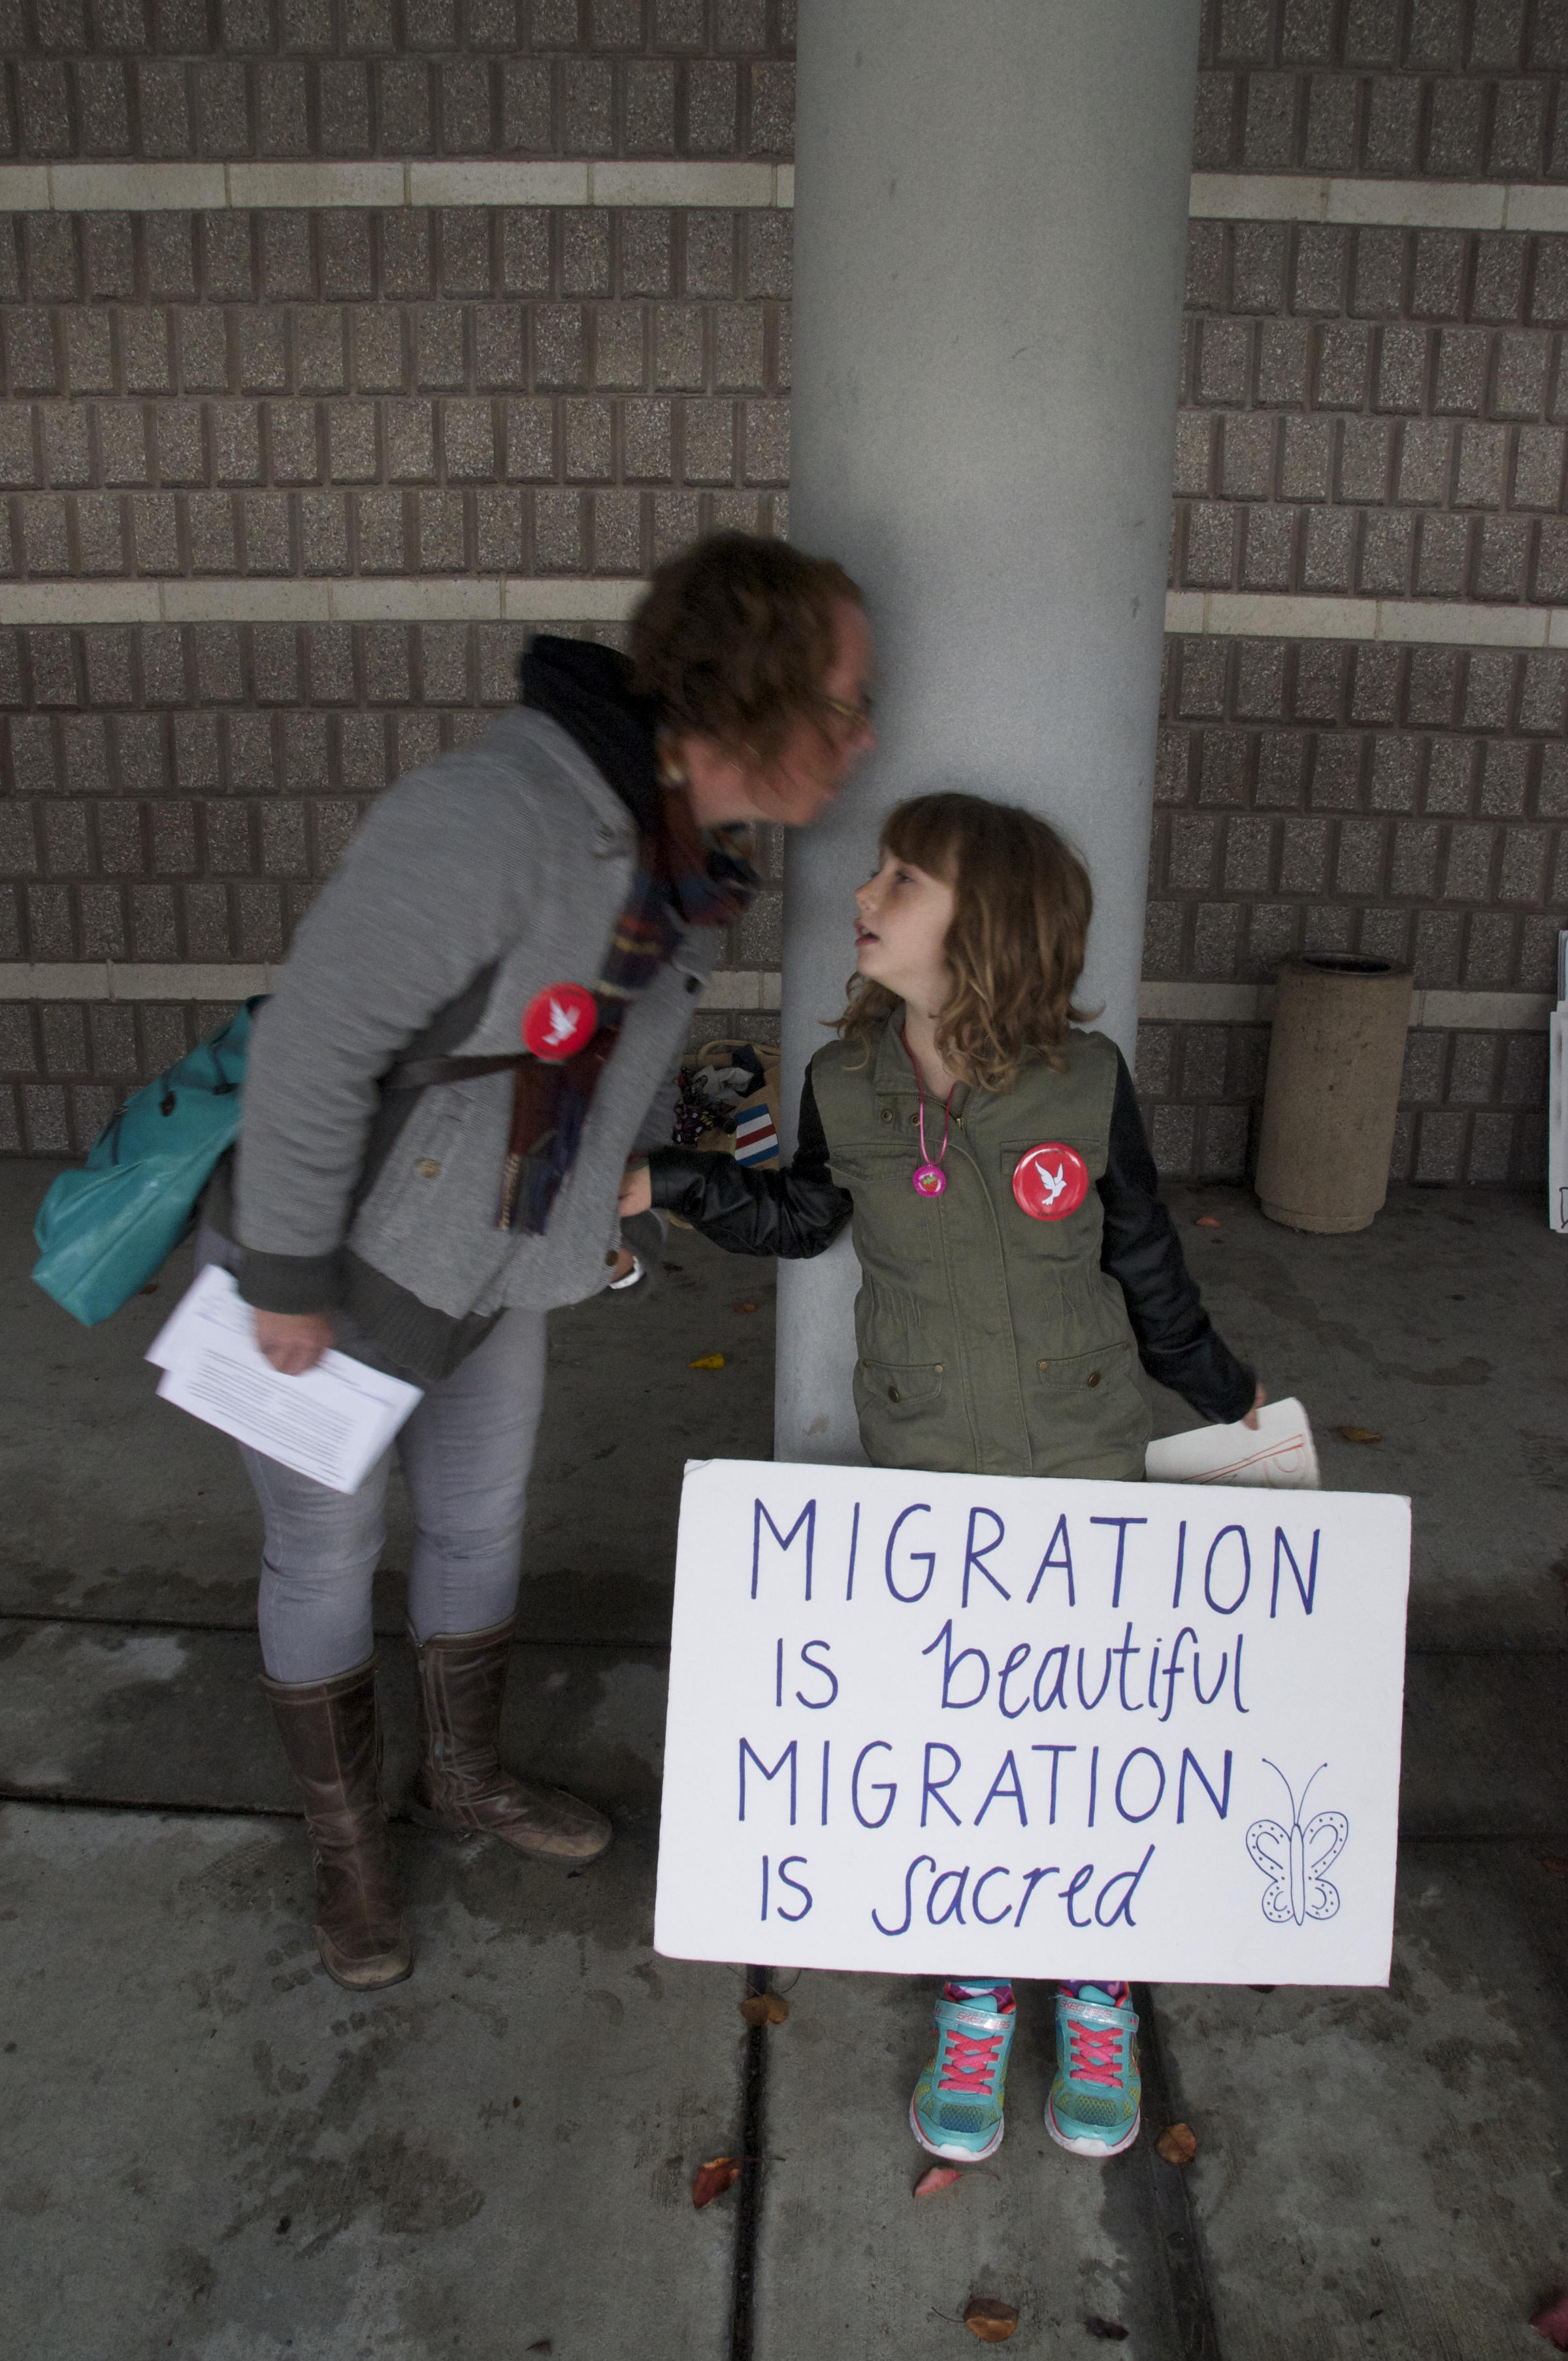 Caption: Danielle Gabriel and her daughter stand vigil outside West County Detention Facility., Credit: Photo by Stephen Southern.